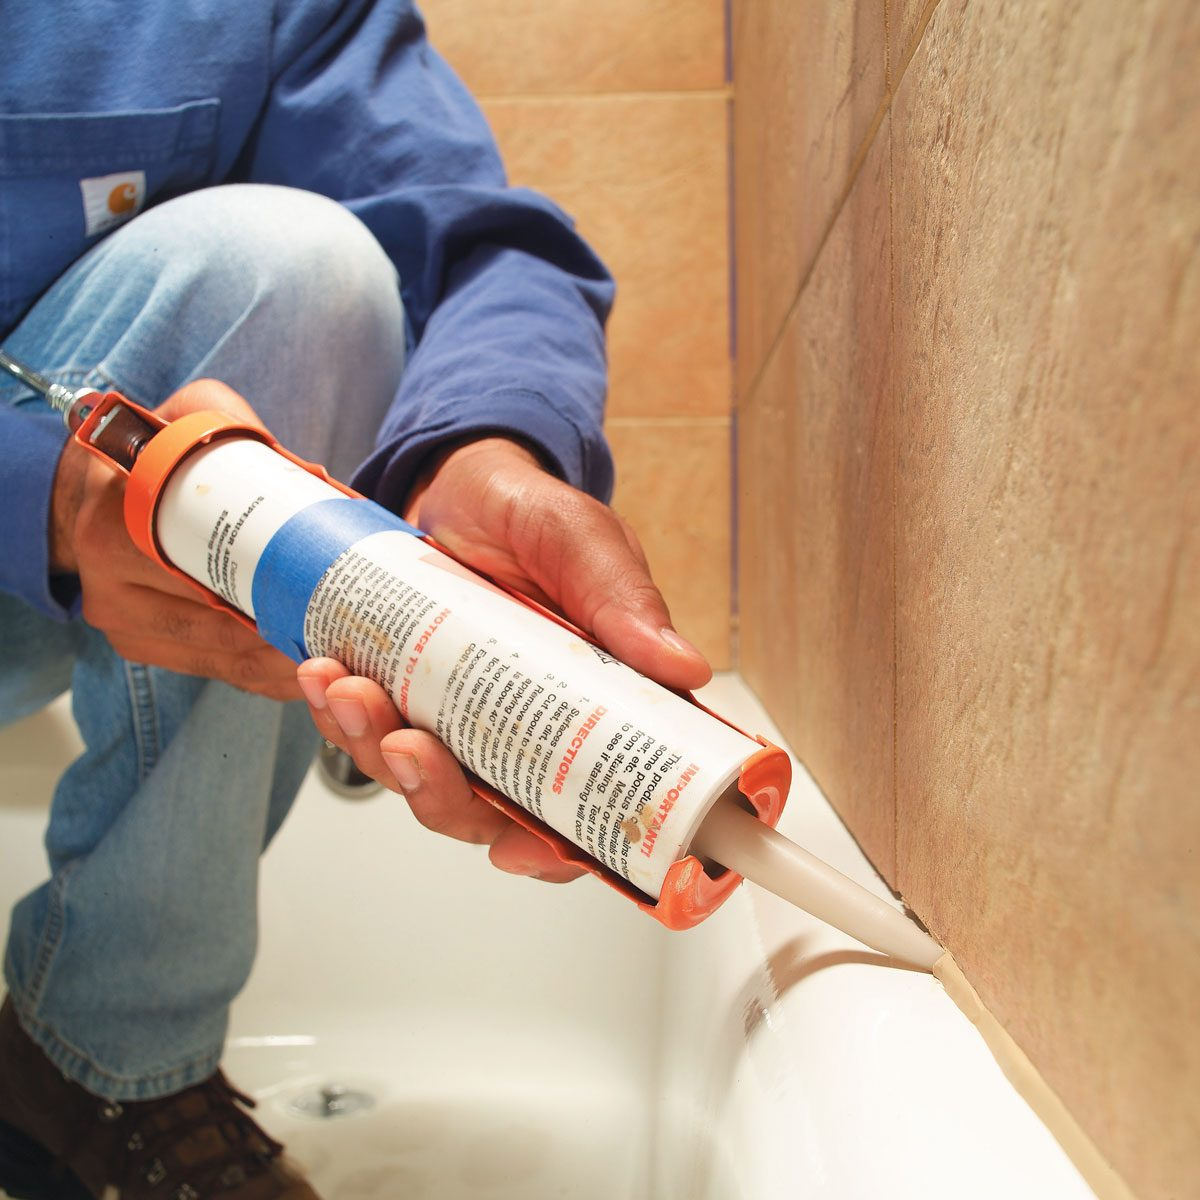 caulking-a-bathtub